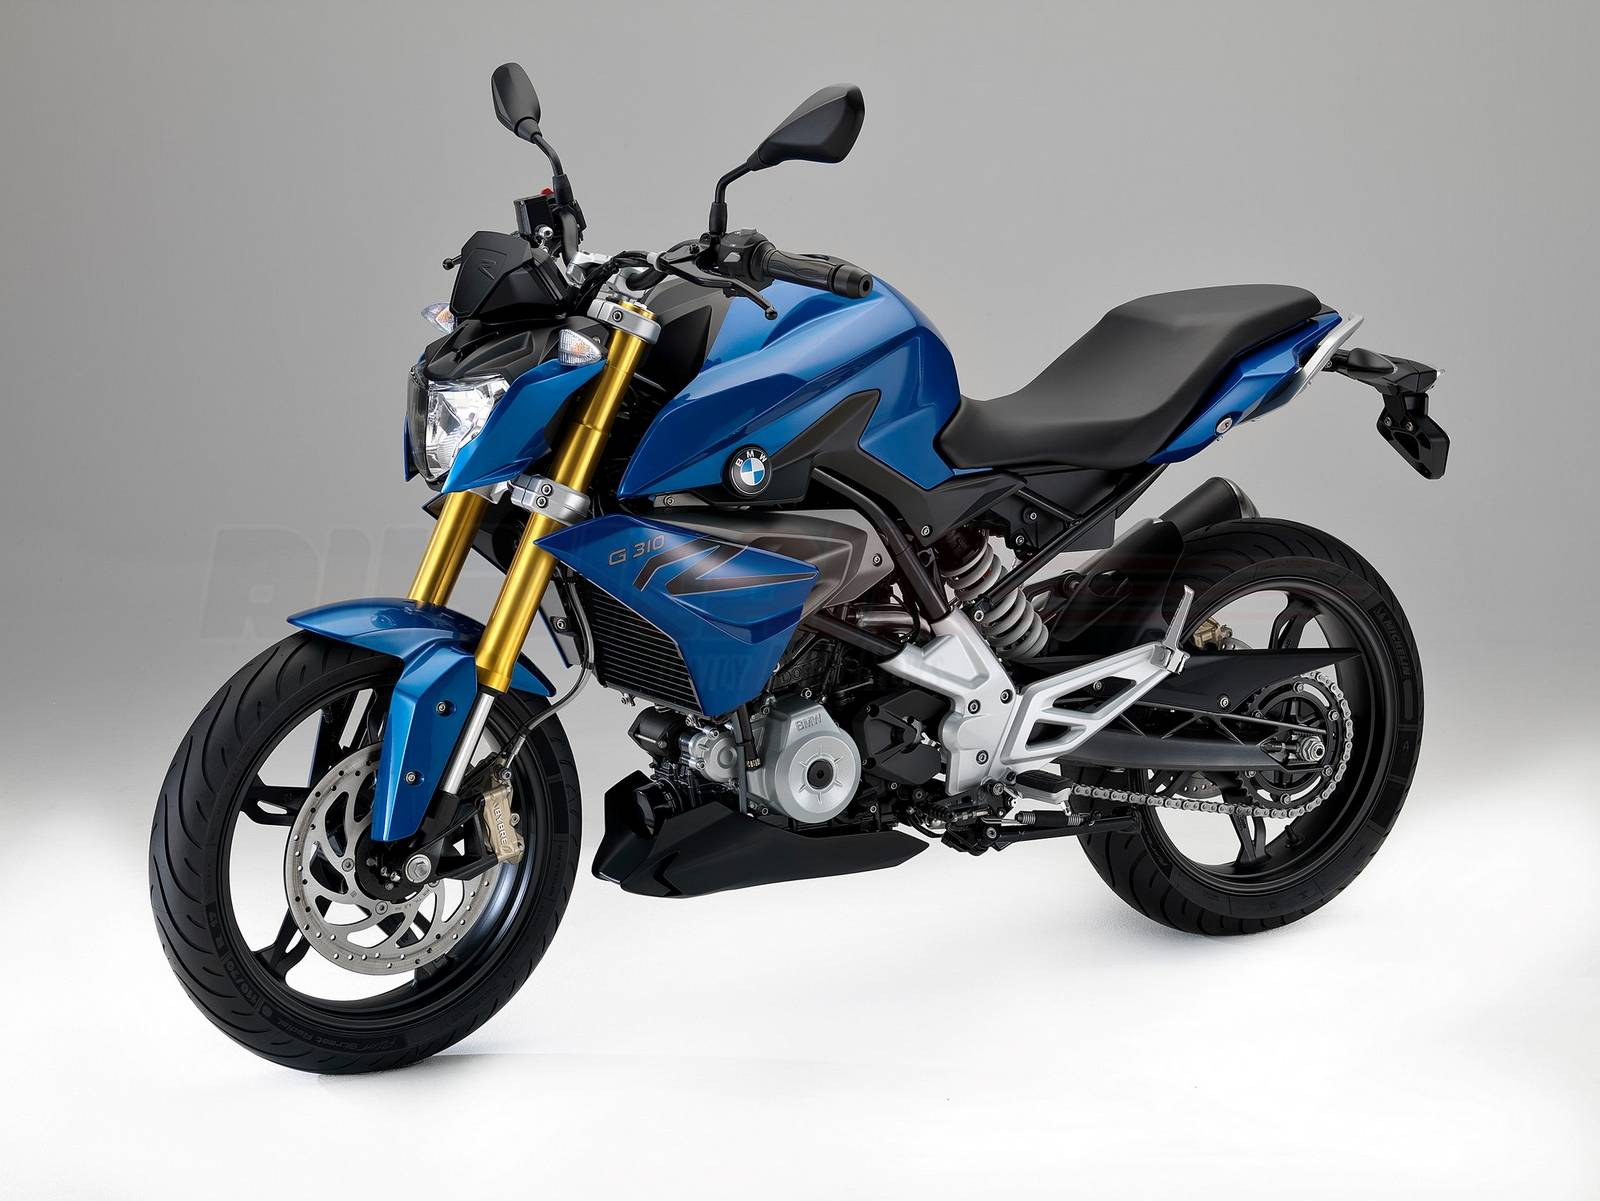 tvs bmw lovechild the g310r breaks cover bajaj ktm. Black Bedroom Furniture Sets. Home Design Ideas